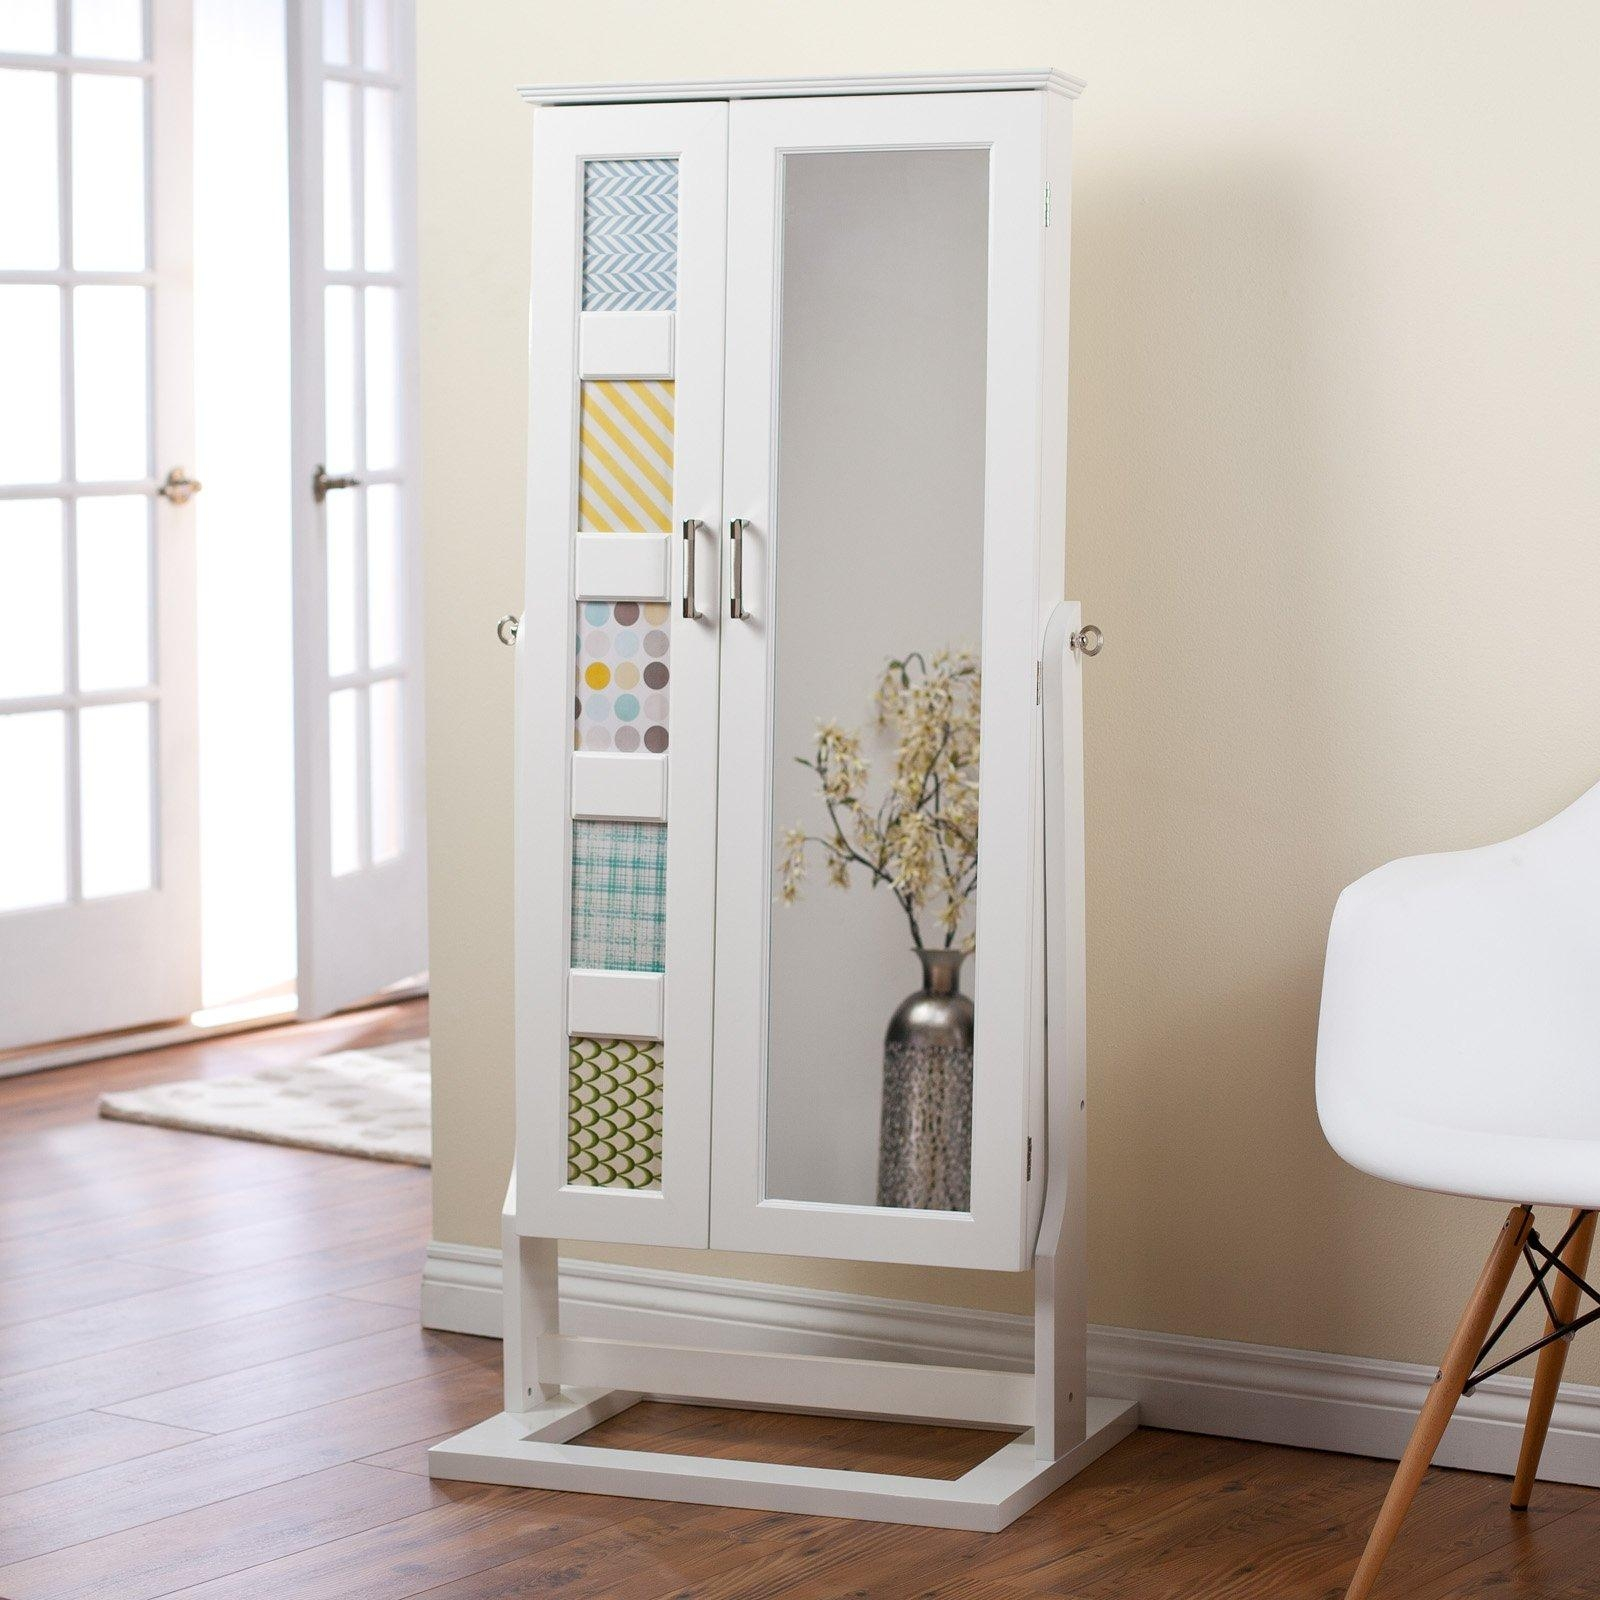 Furniture: Black Jewelry Armoire Mirror On Wooden Floor And Cream Inside Cream Floor Standing Mirror (View 11 of 20)